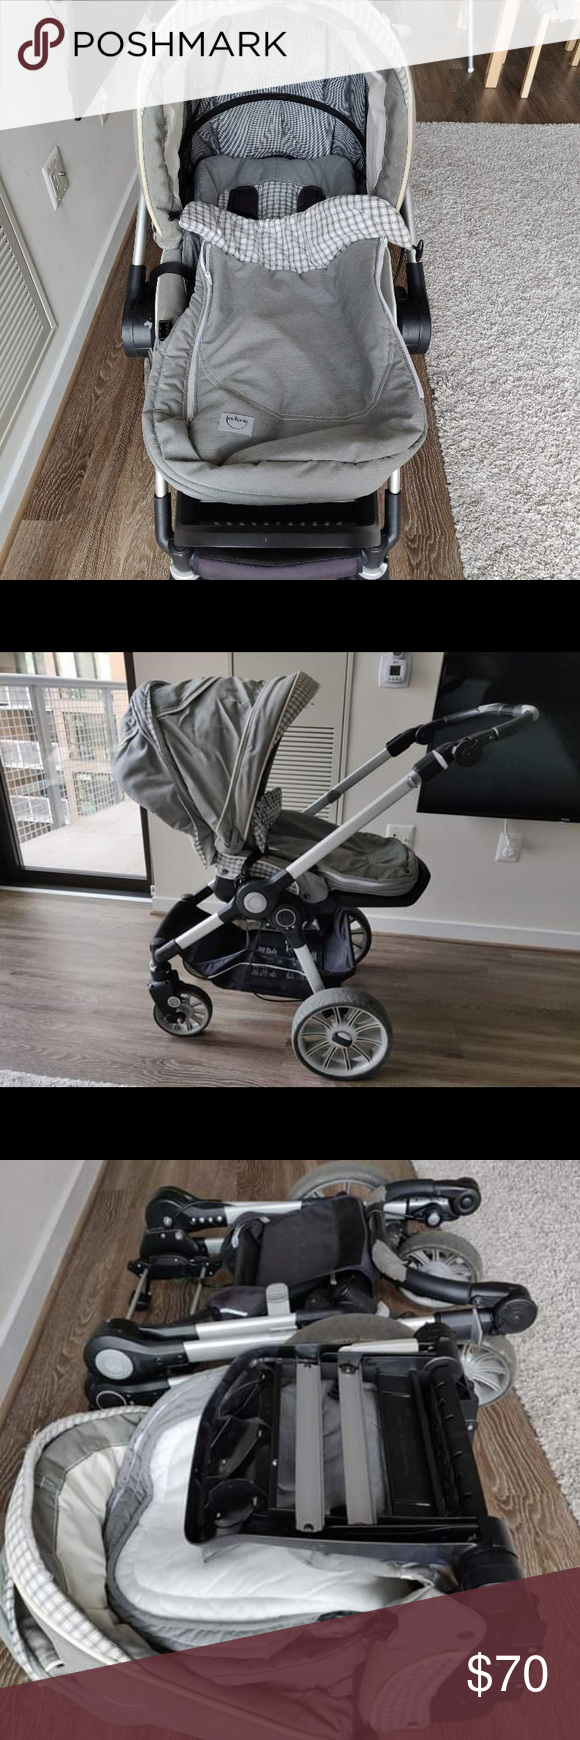 German baby stroller with a Has been used and it